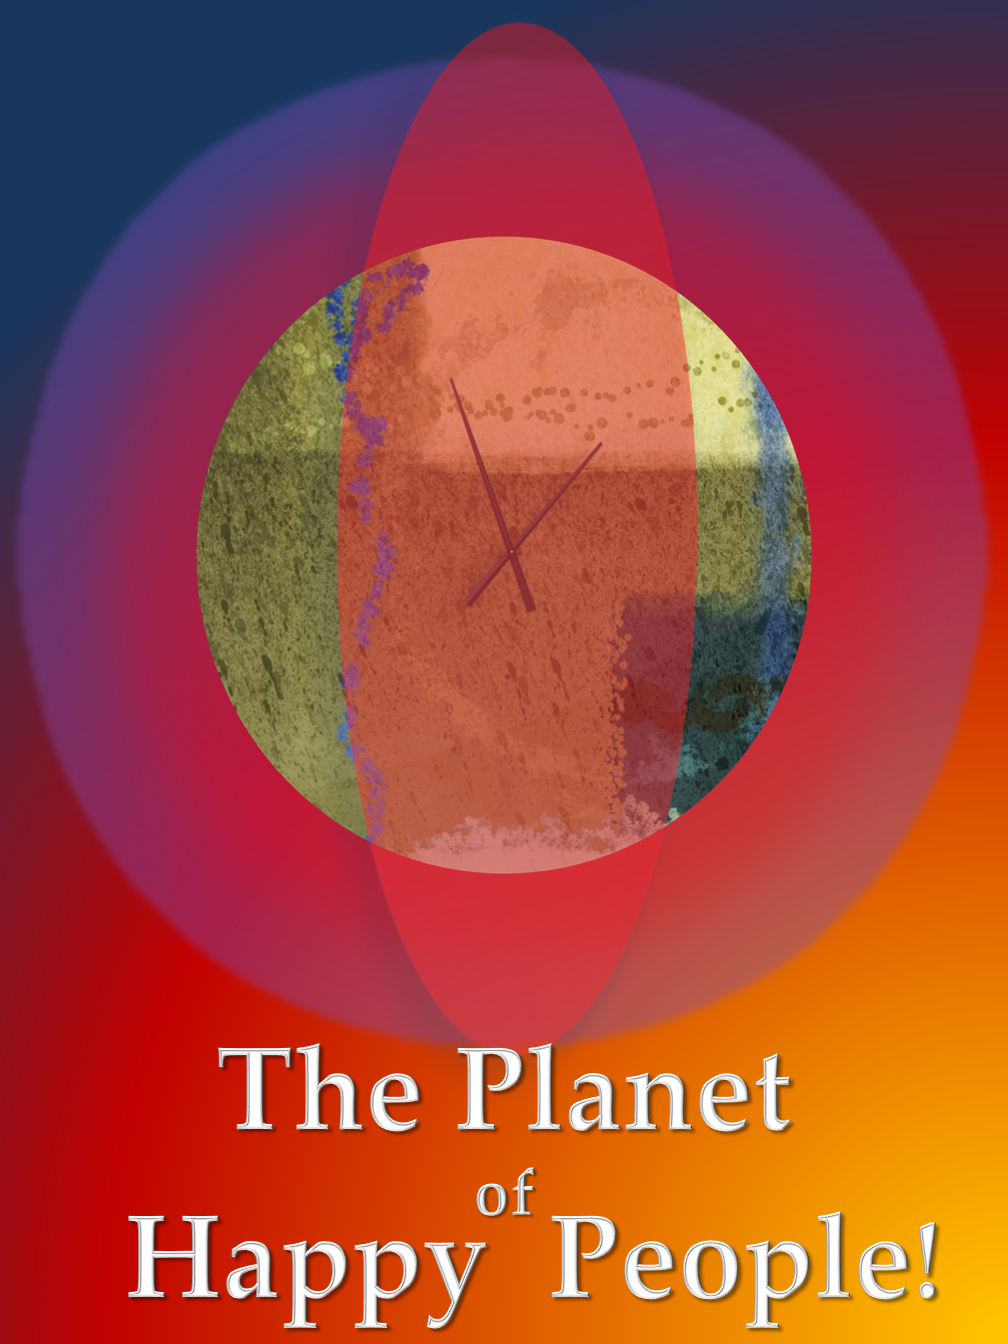 The Planet of Happy People!